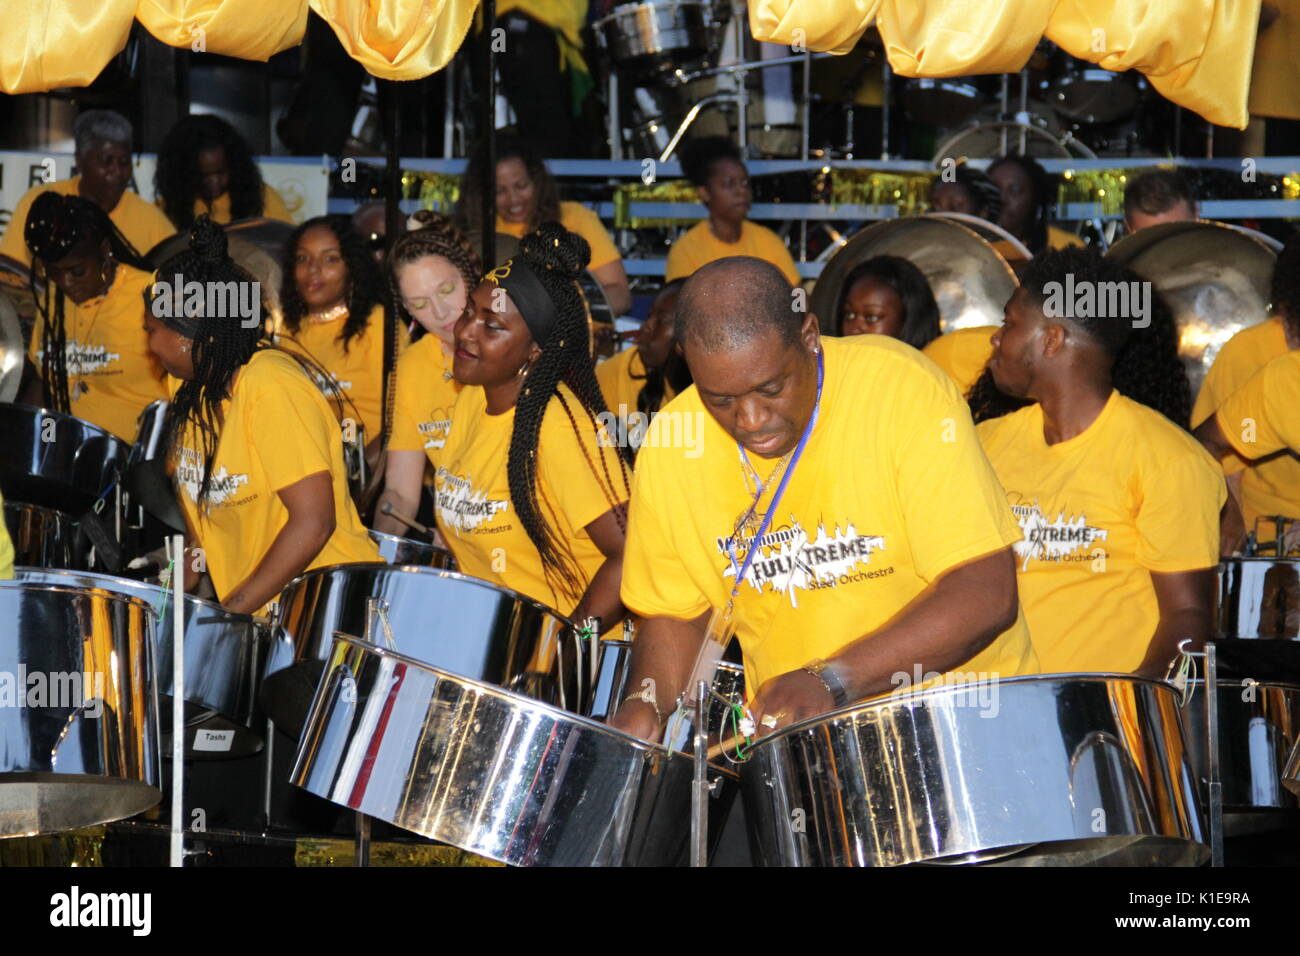 panorama member bands at playing croydon stock drum notting band members steel championships the hill s from orchestra photo